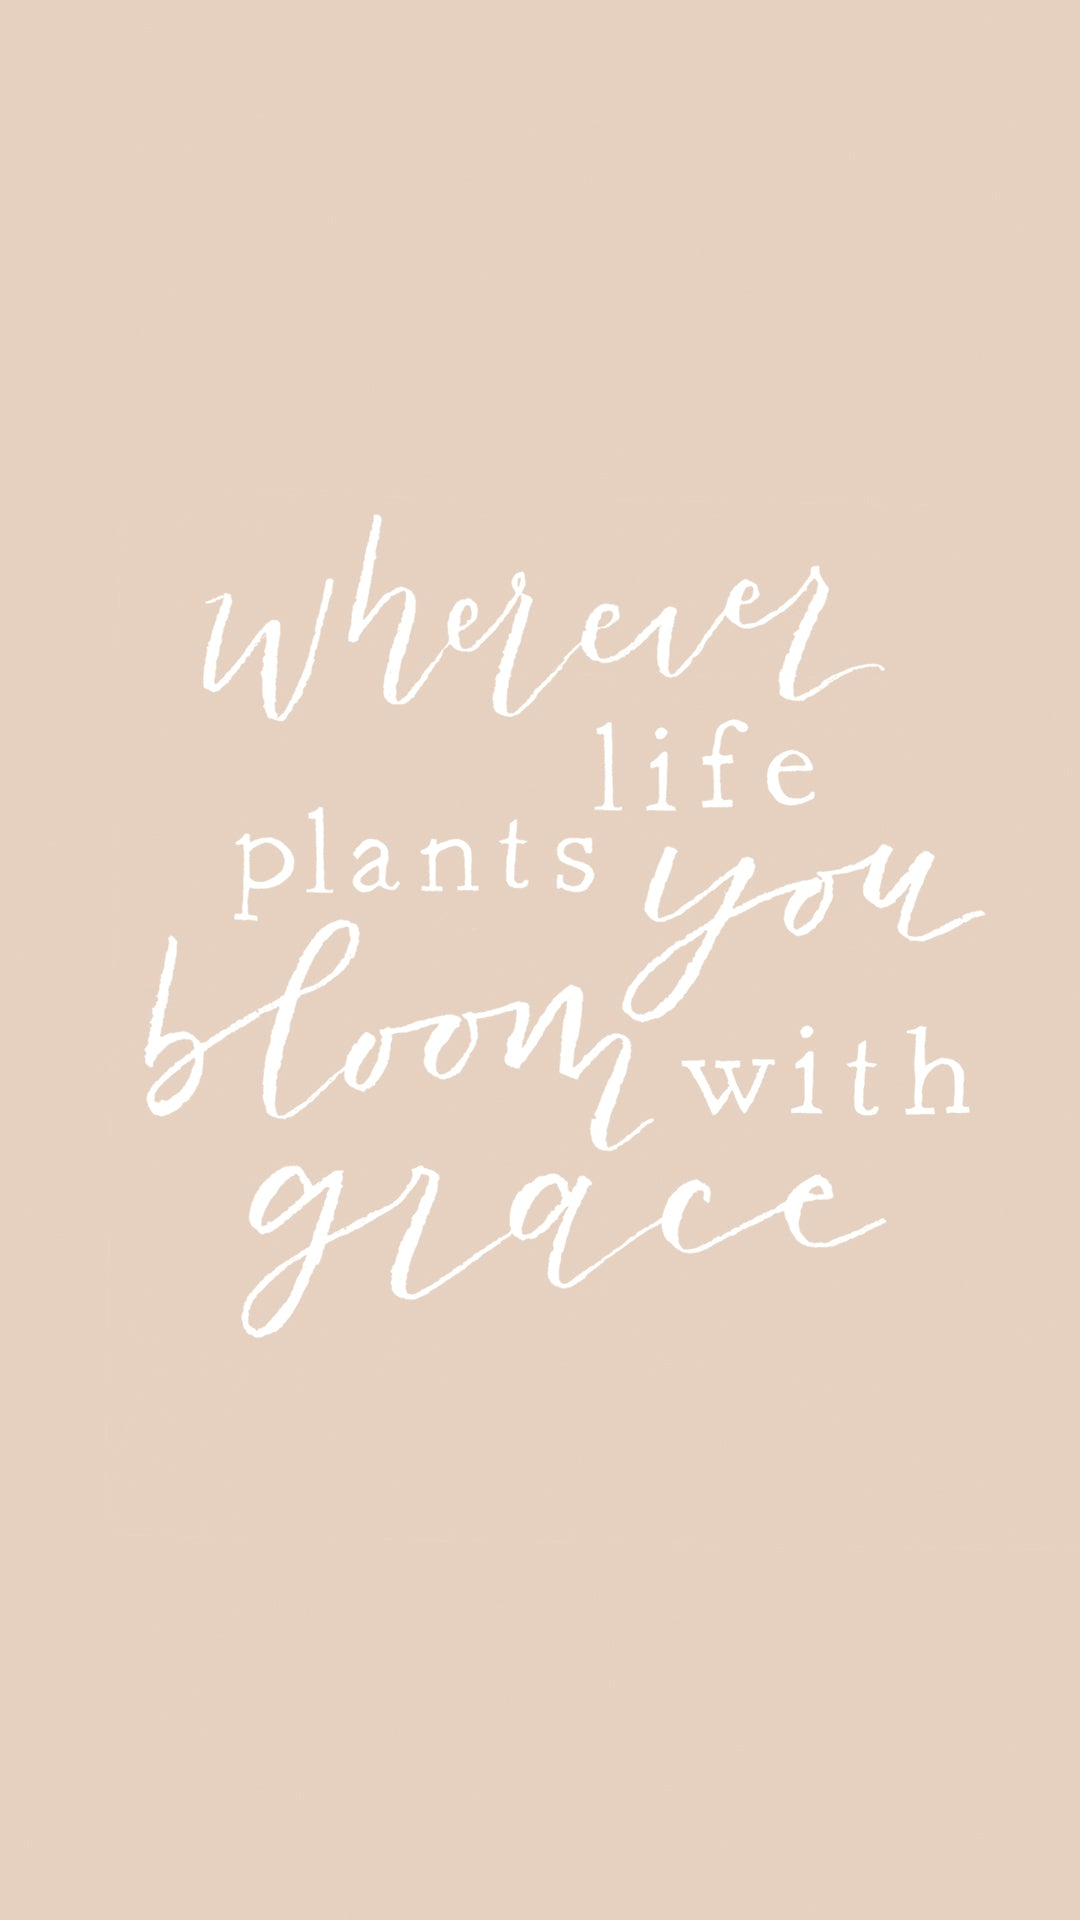 spring phone wallpaper plant grace quote